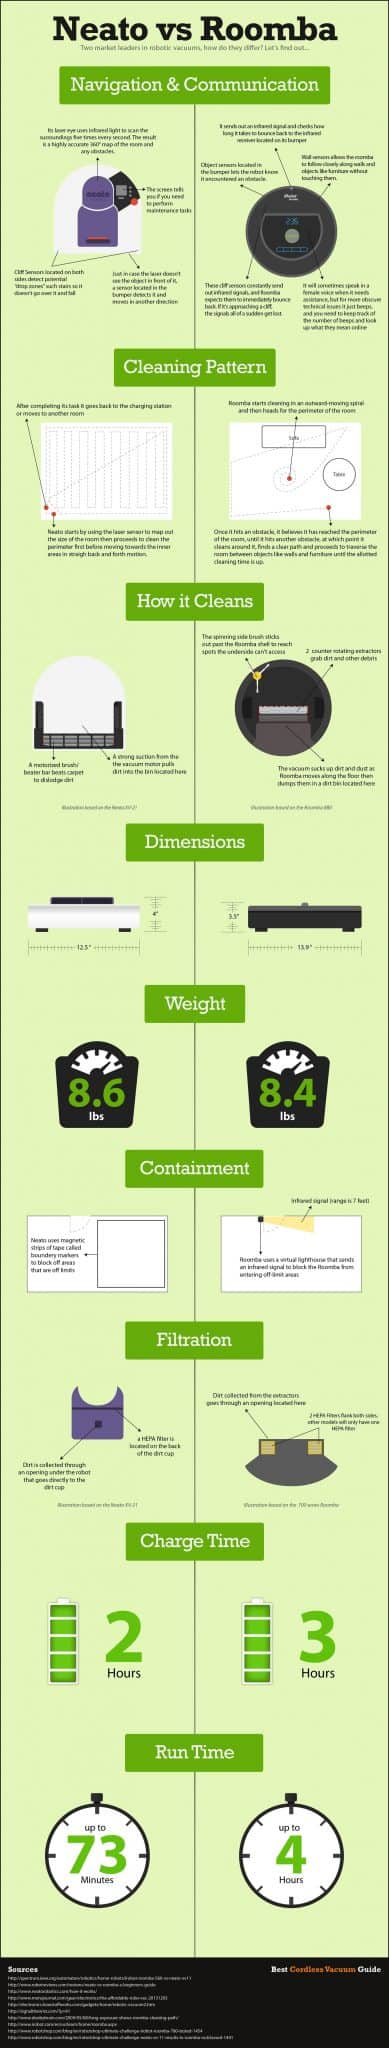 Neato vs Roomba Infographic